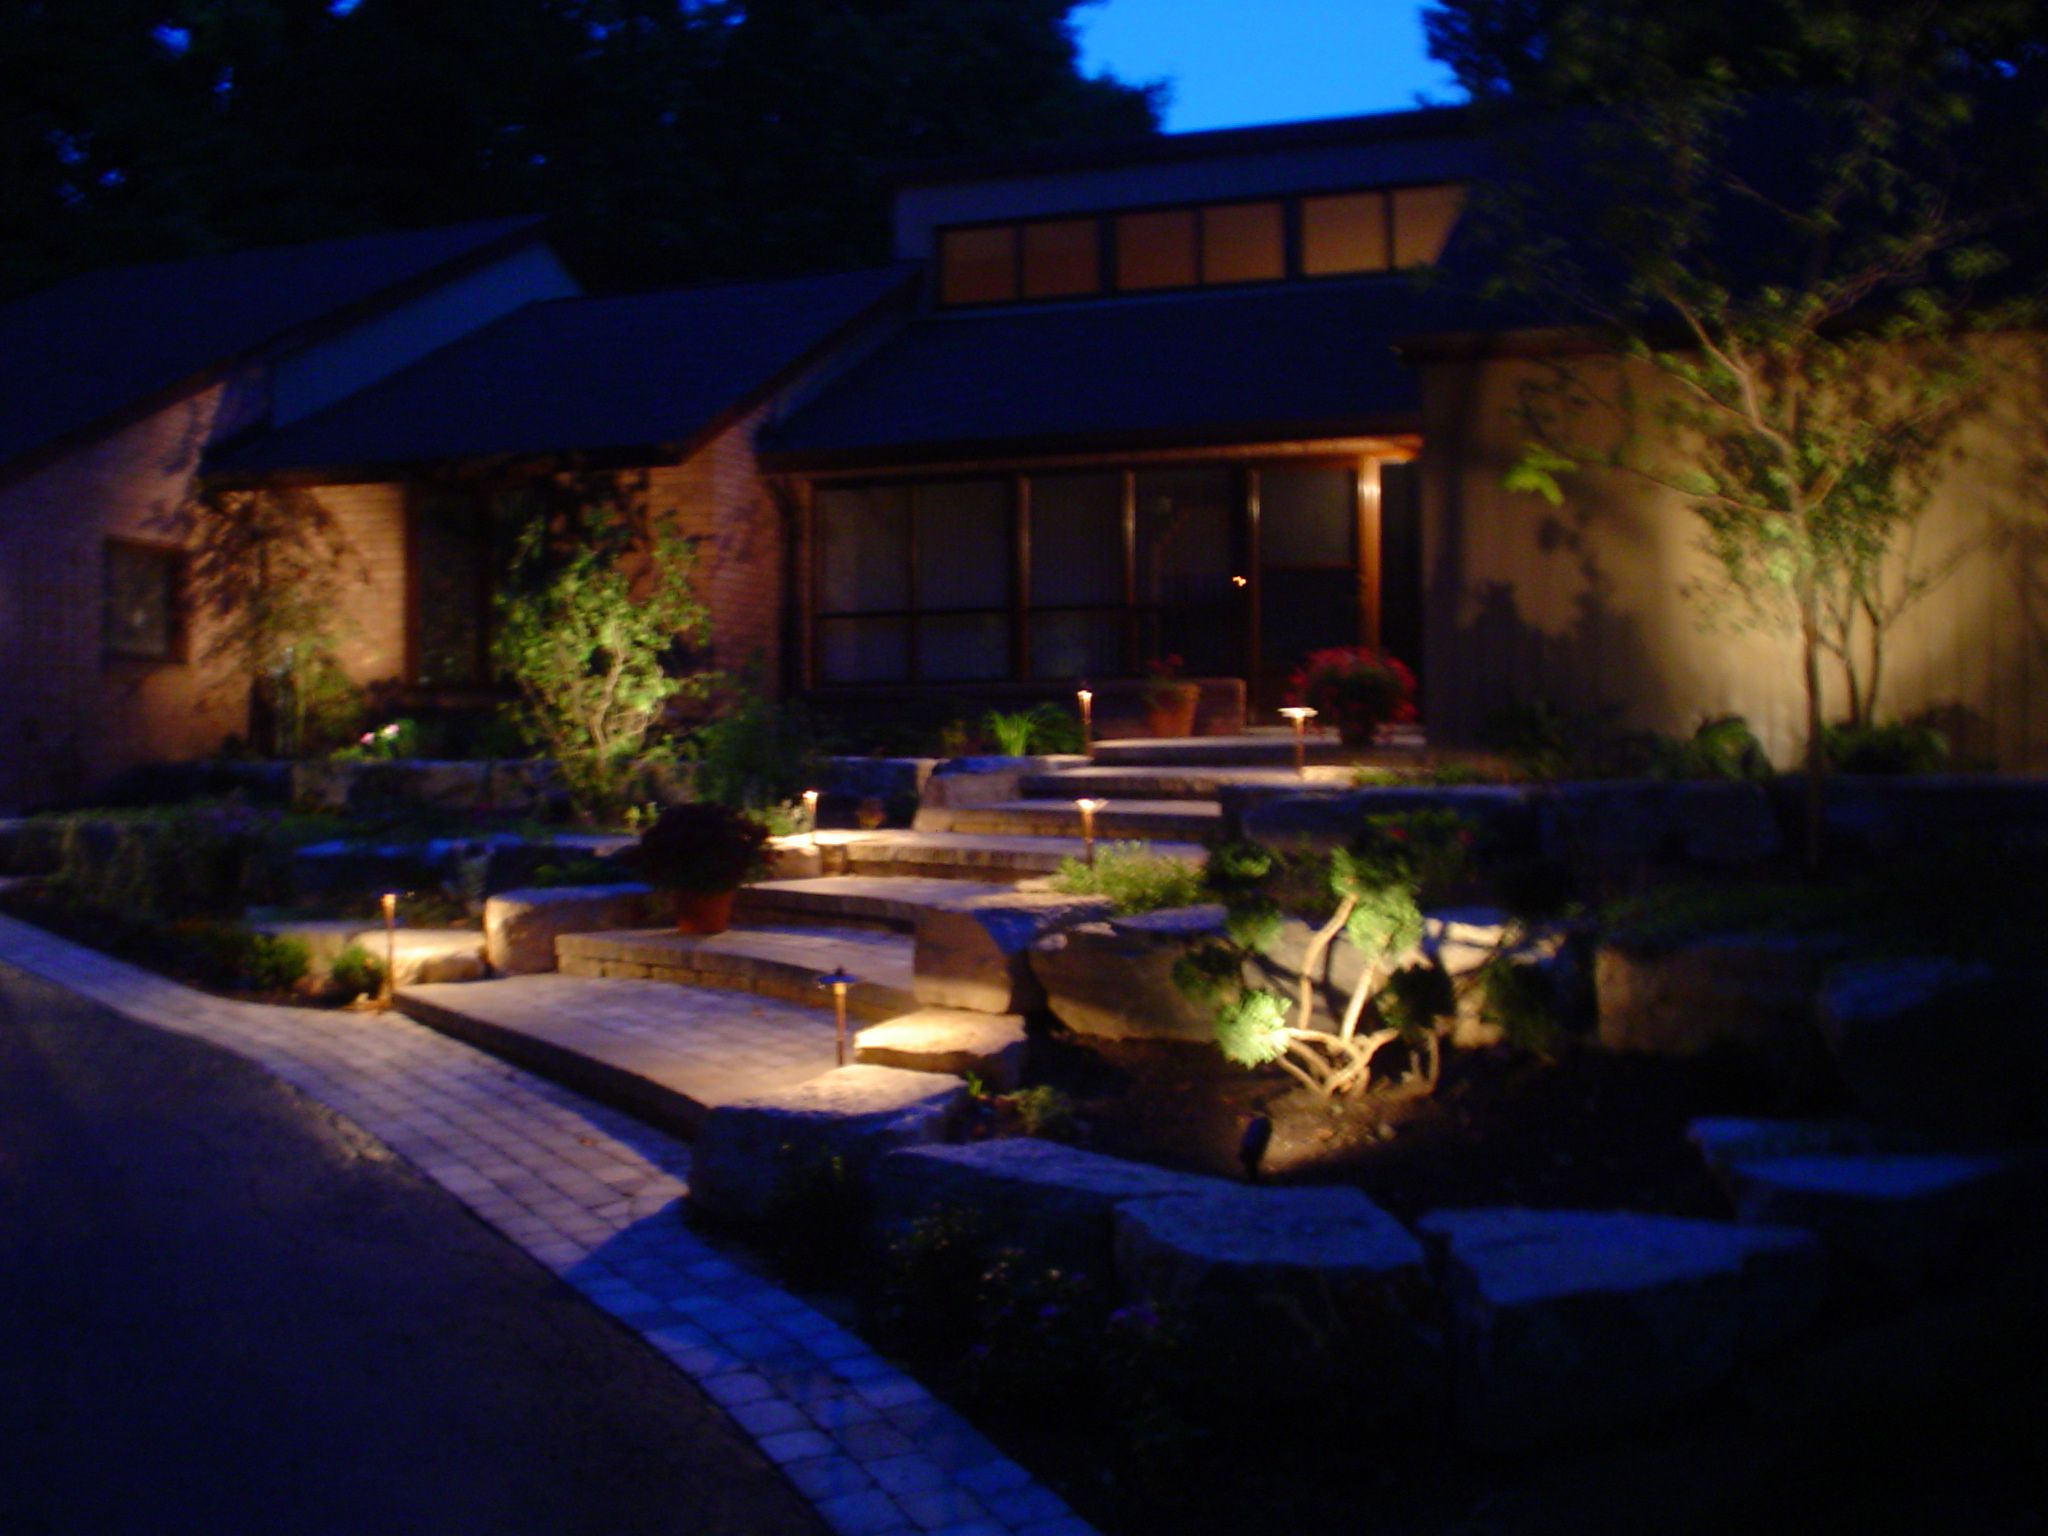 backyardlandscapinglighting landscape lighting low voltage path lights spot outdoor lighting design ideas - Landscape Lighting Design Ideas